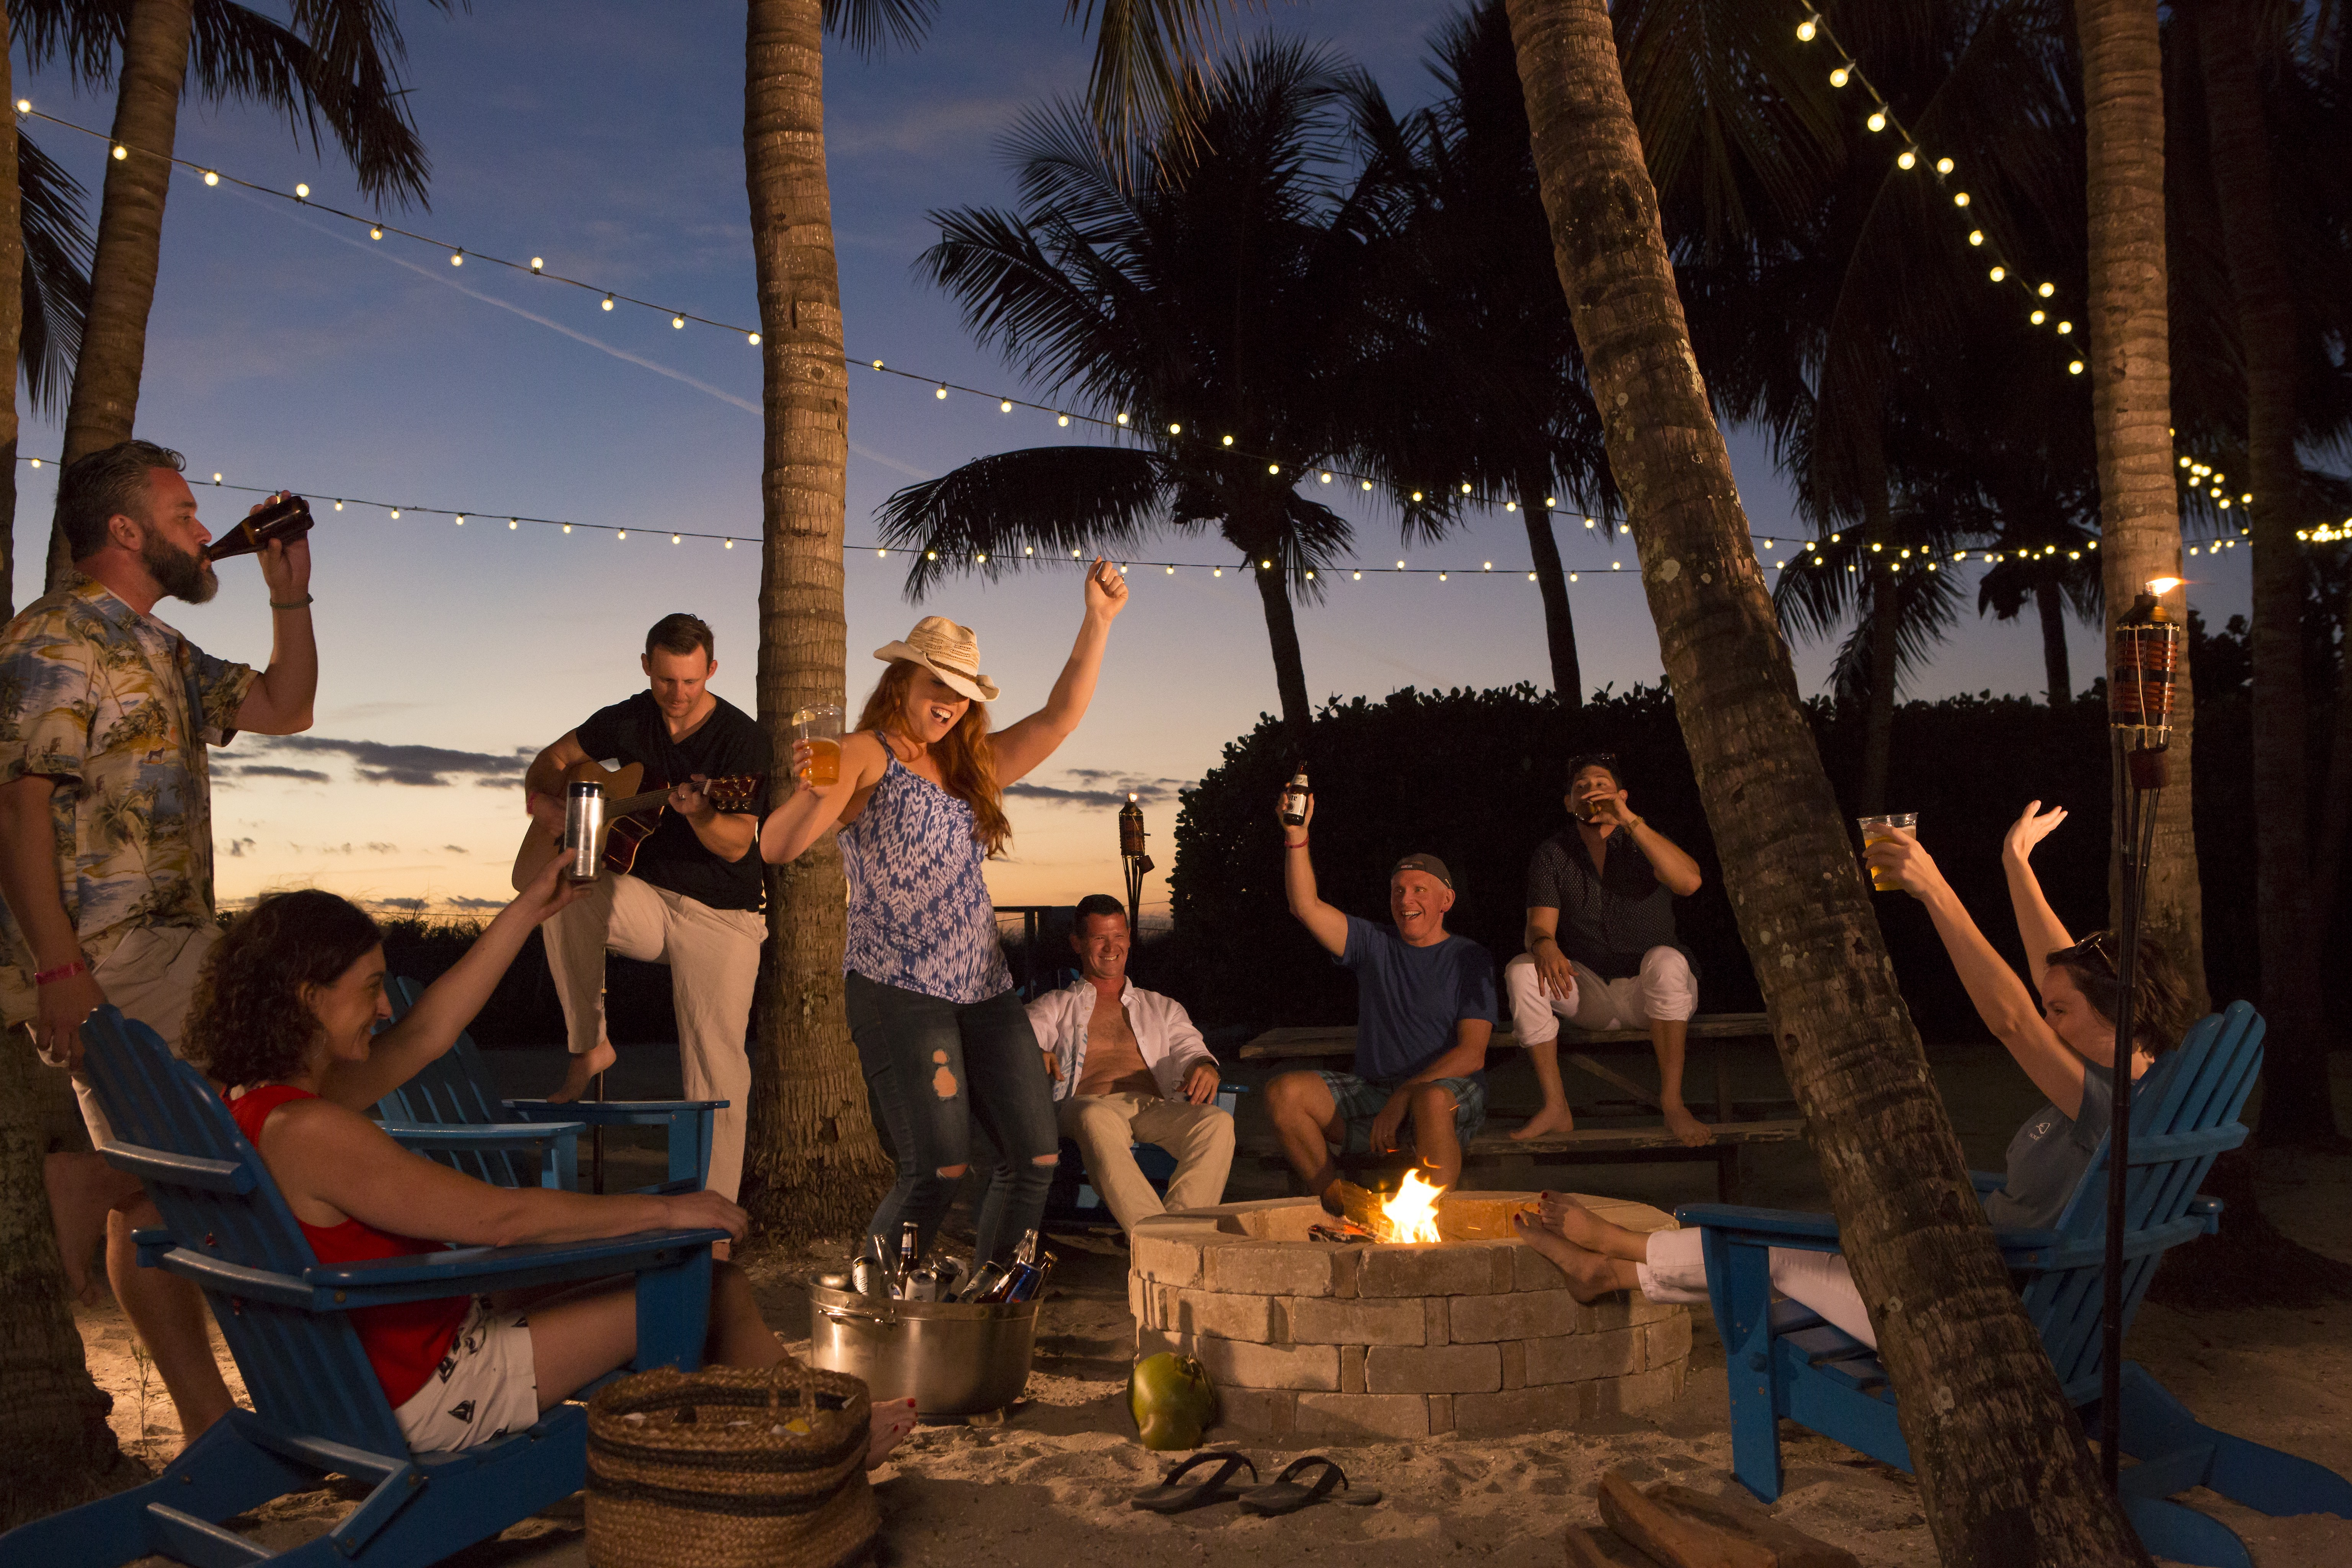 Guests dancing around the firepit at sunset.